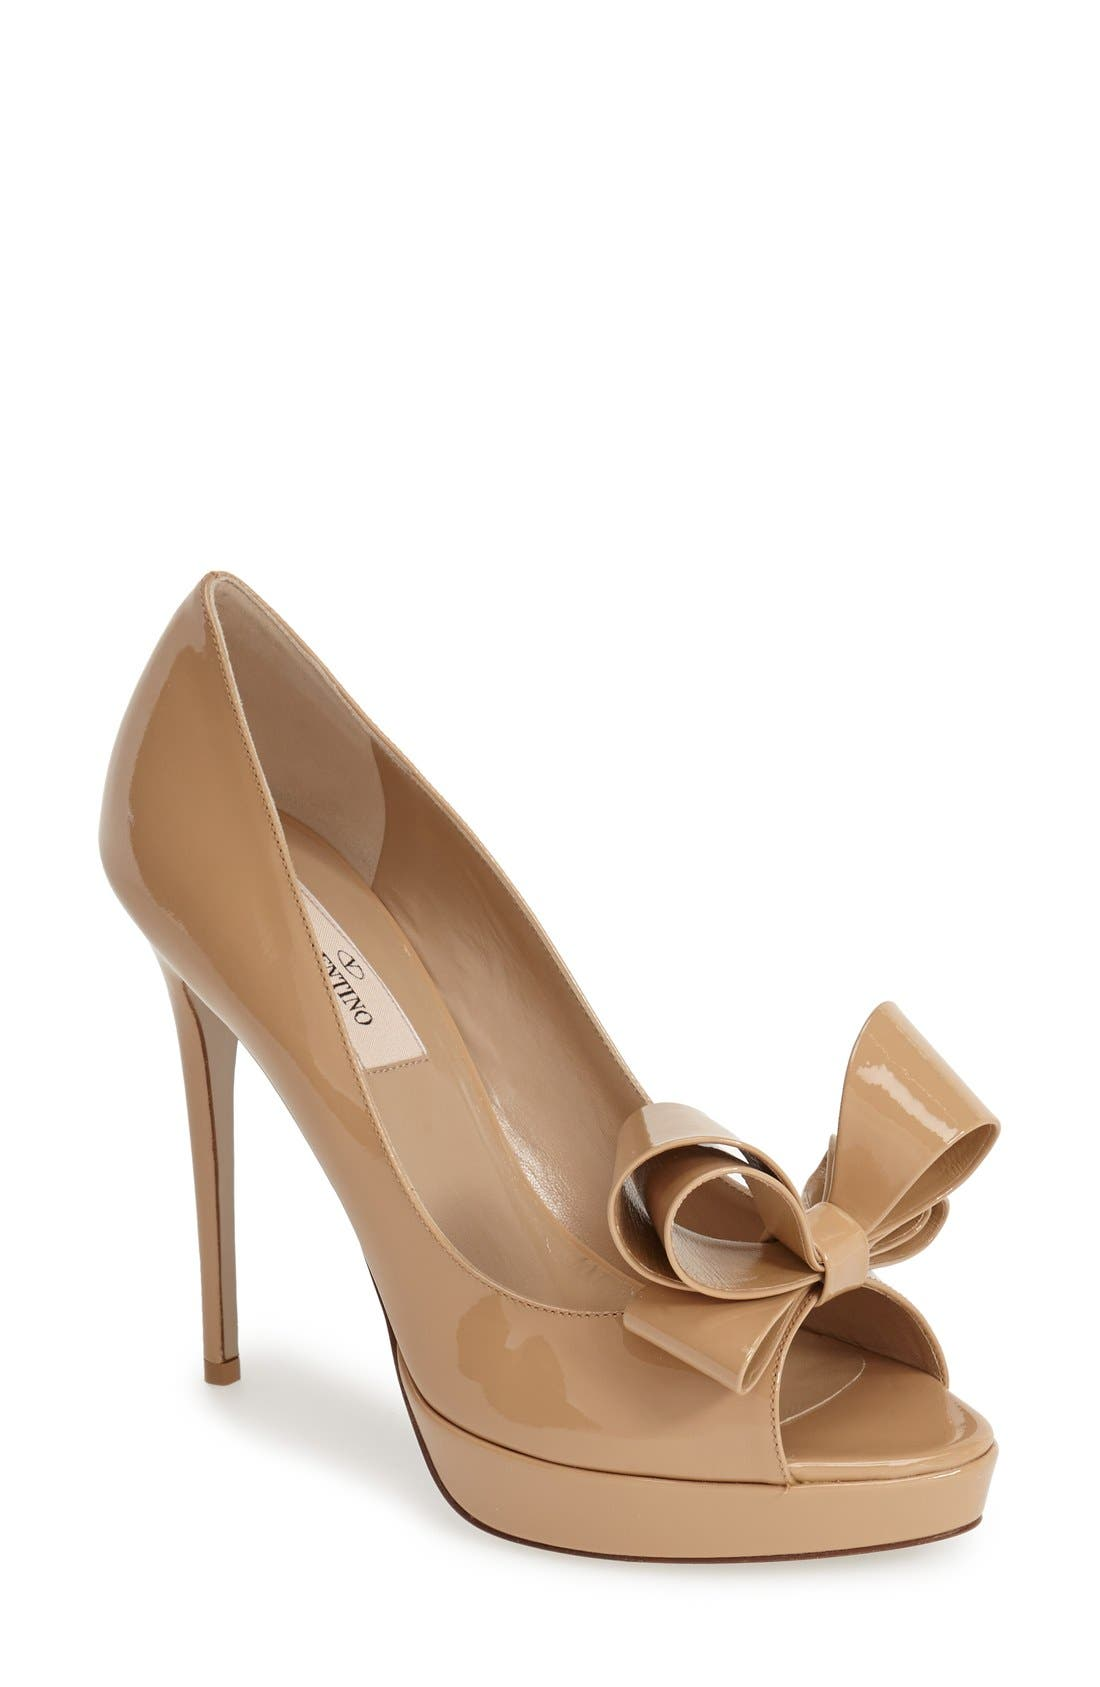 Alternate Image 1 Selected - VALENTINO GARAVANI Couture Bow Platform Pump (Women)